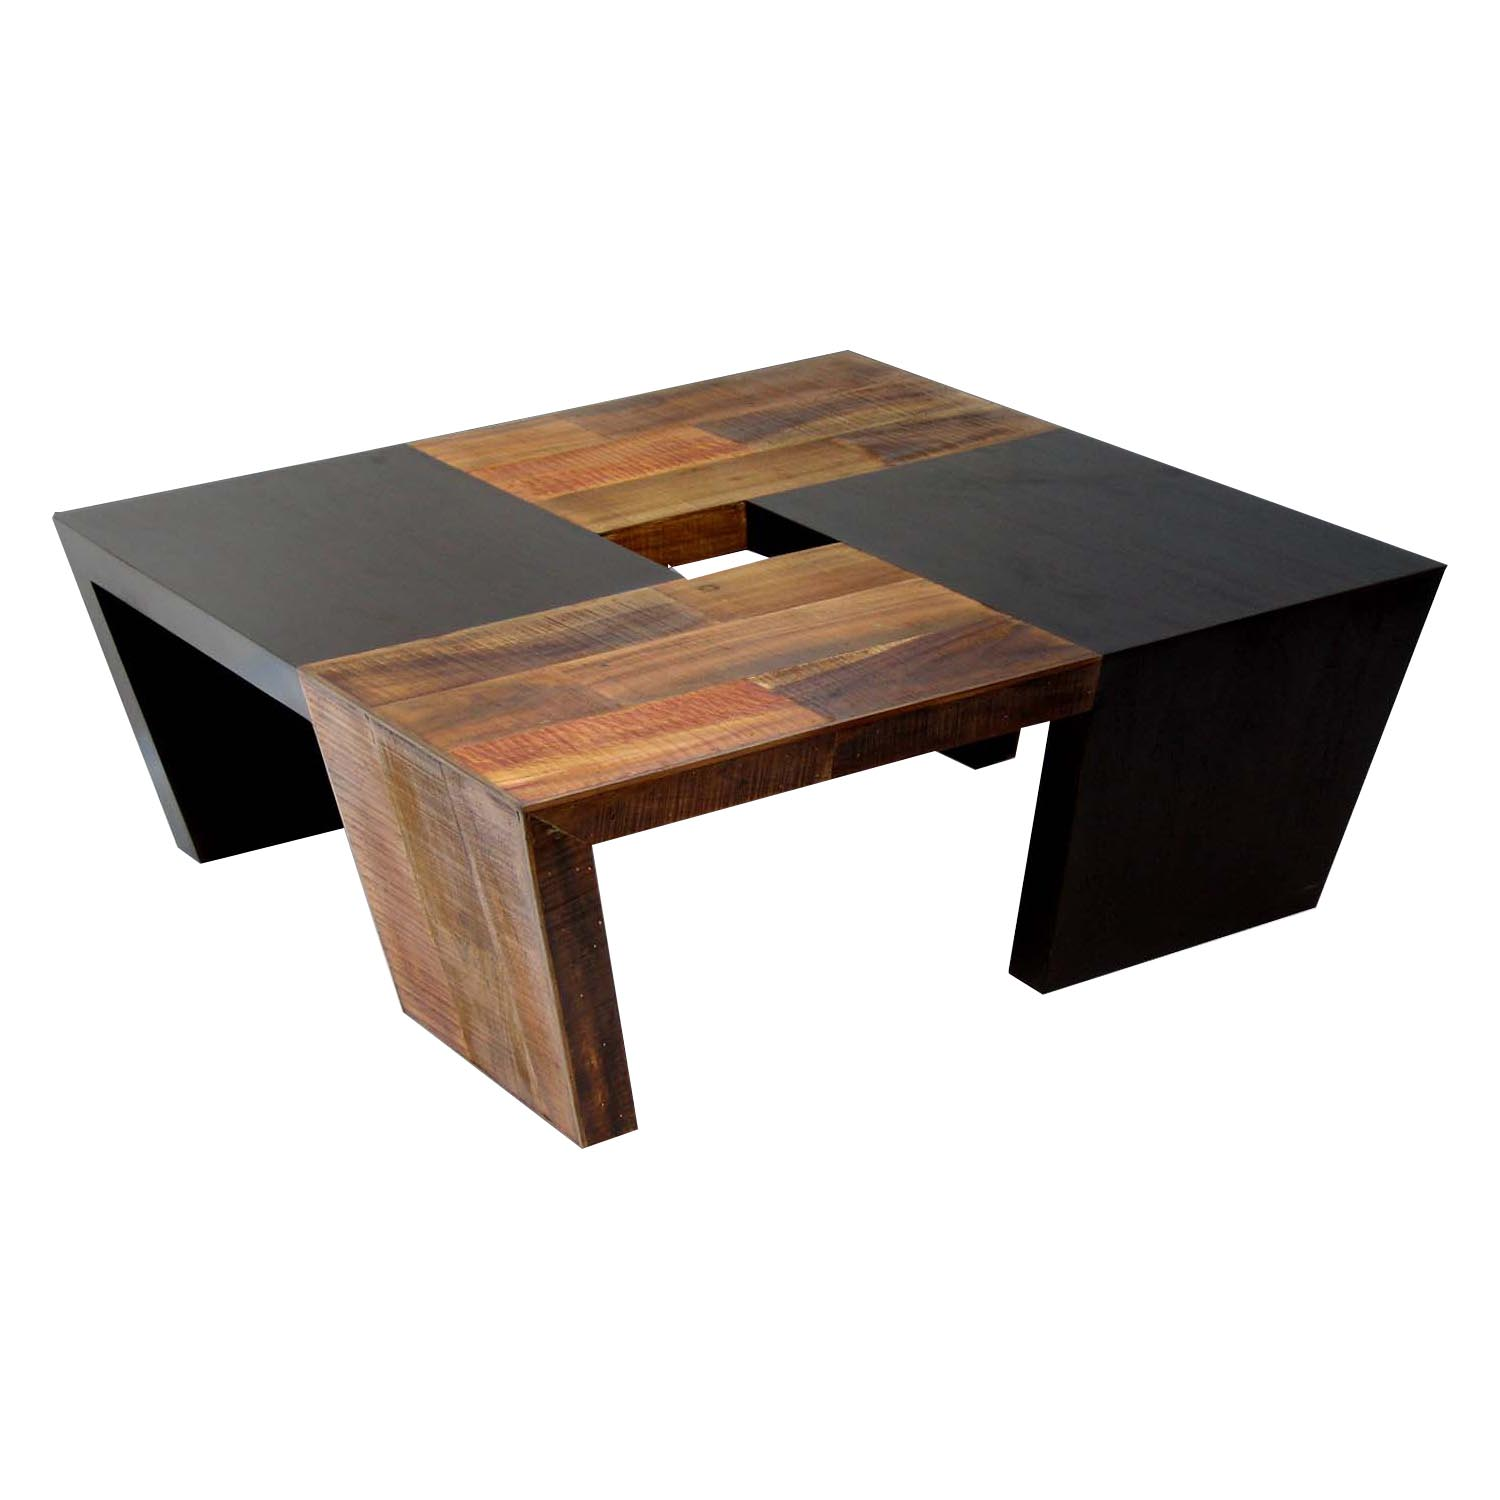 Modern wood coffee table coffee table design ideas Contemporary coffee tables design